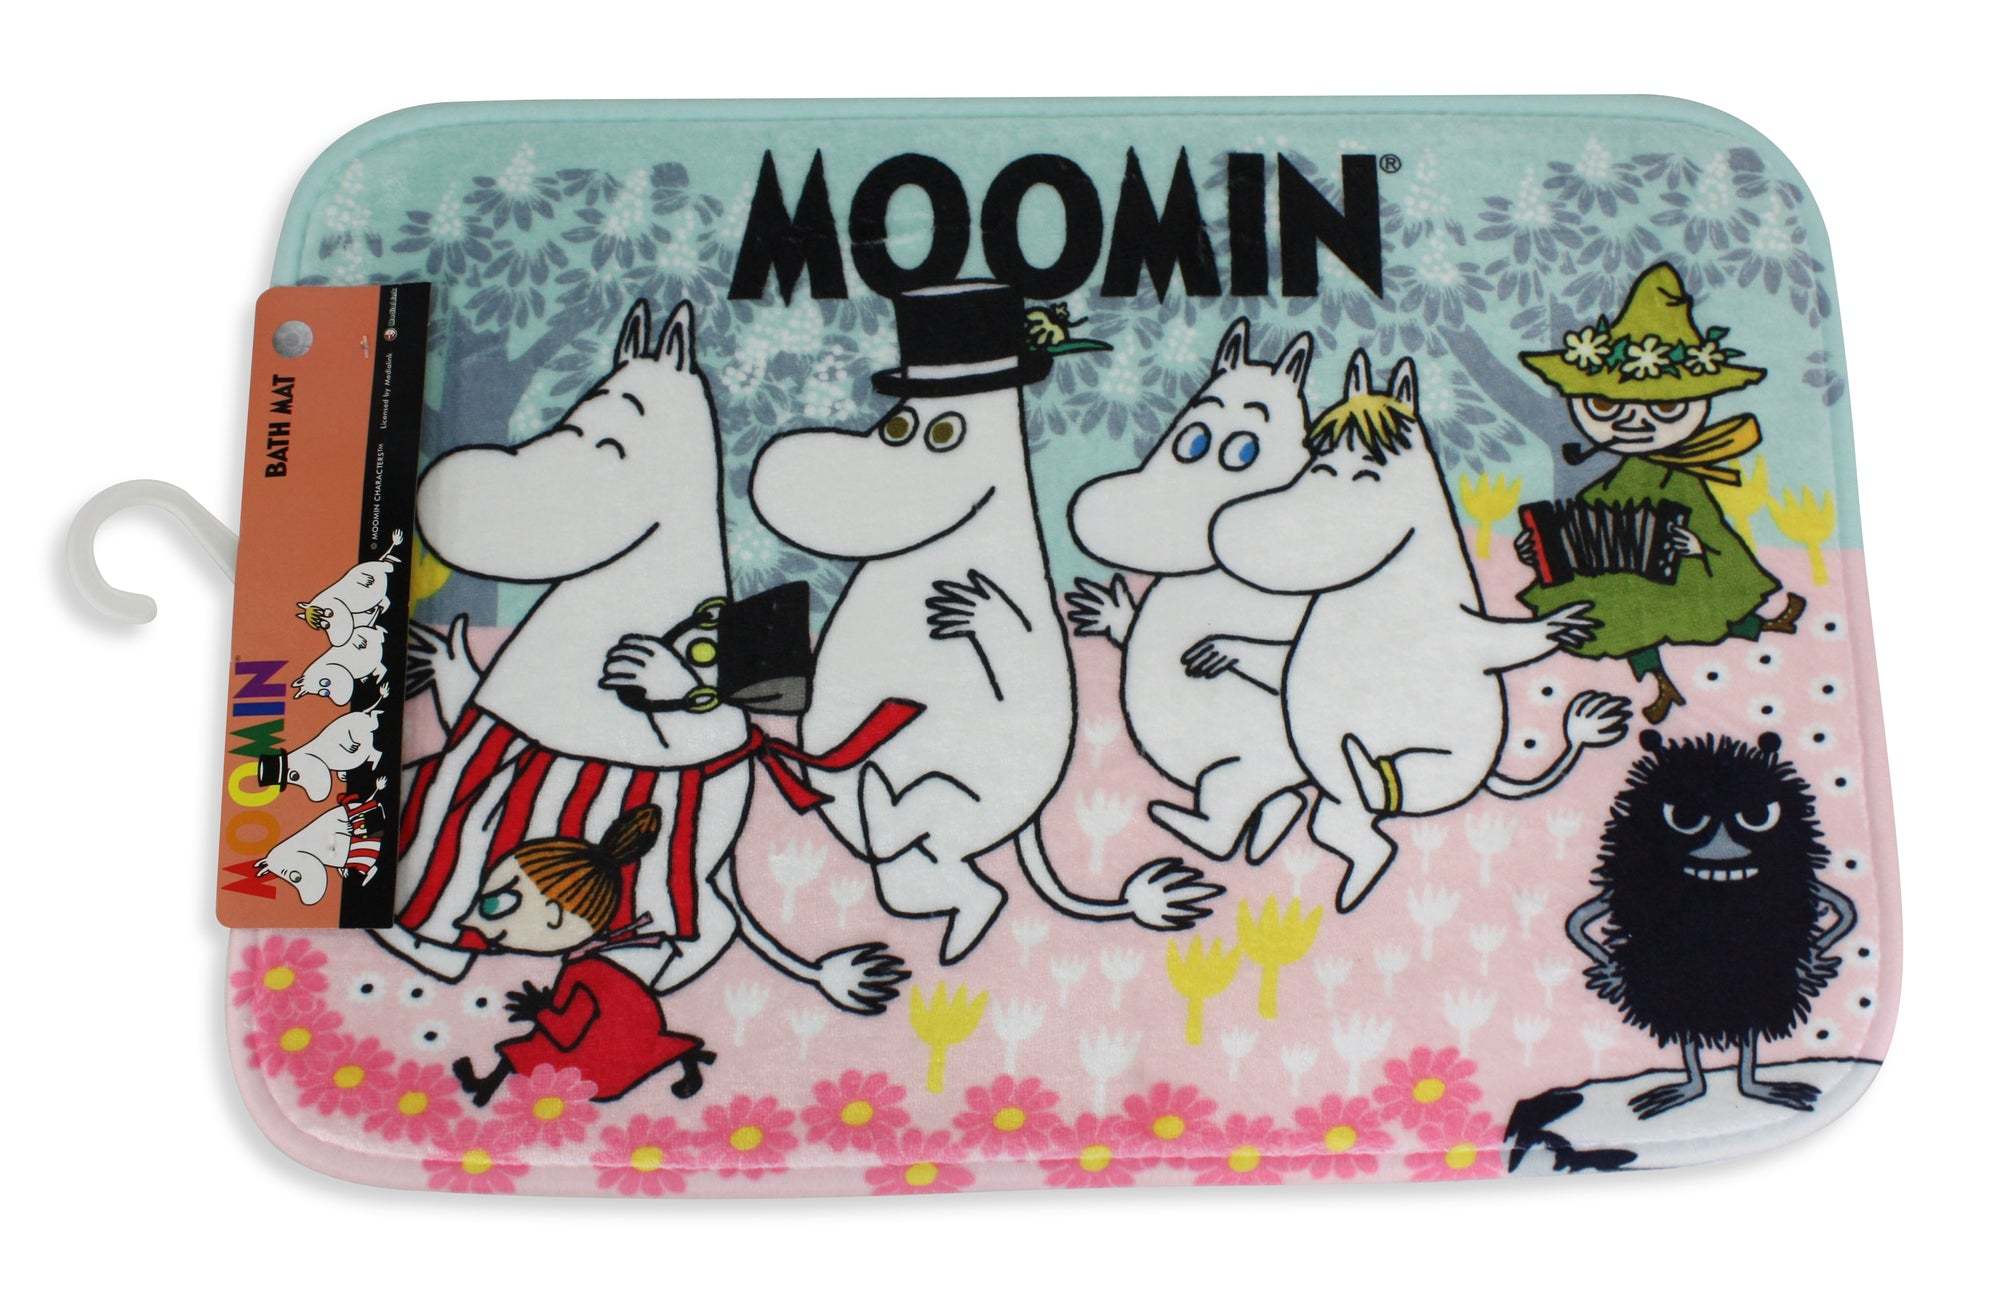 Moomin Bath Mat, Floor Mat 35cm x 50cm: Life in Moomin Valley. - farangshop-co